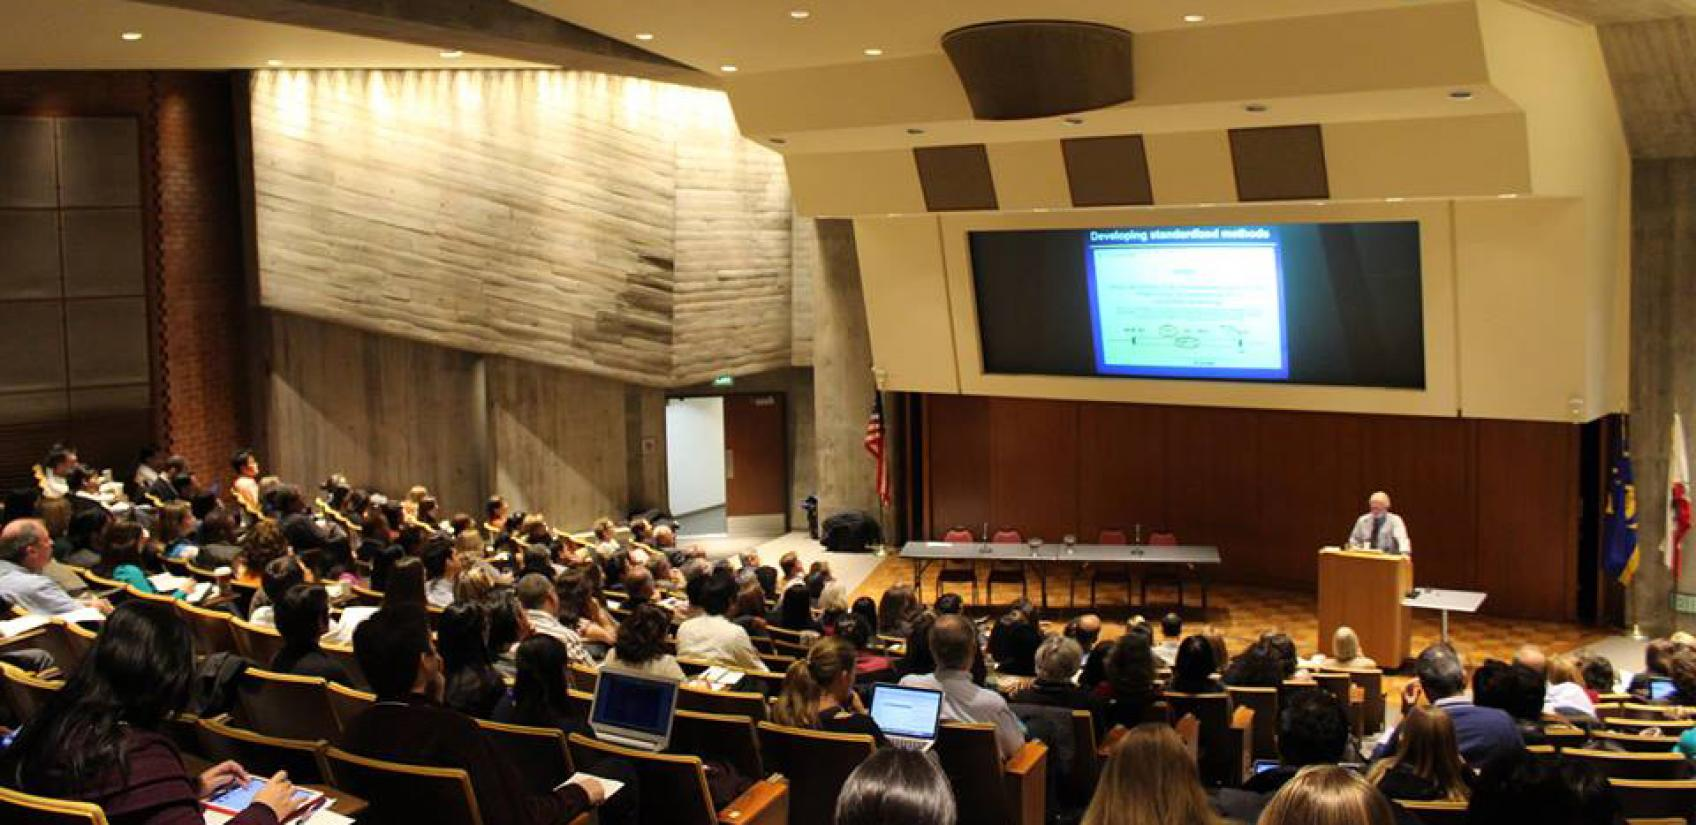 A picture of CITC co-founder Philip Hopewell speaking to a lecture hall.